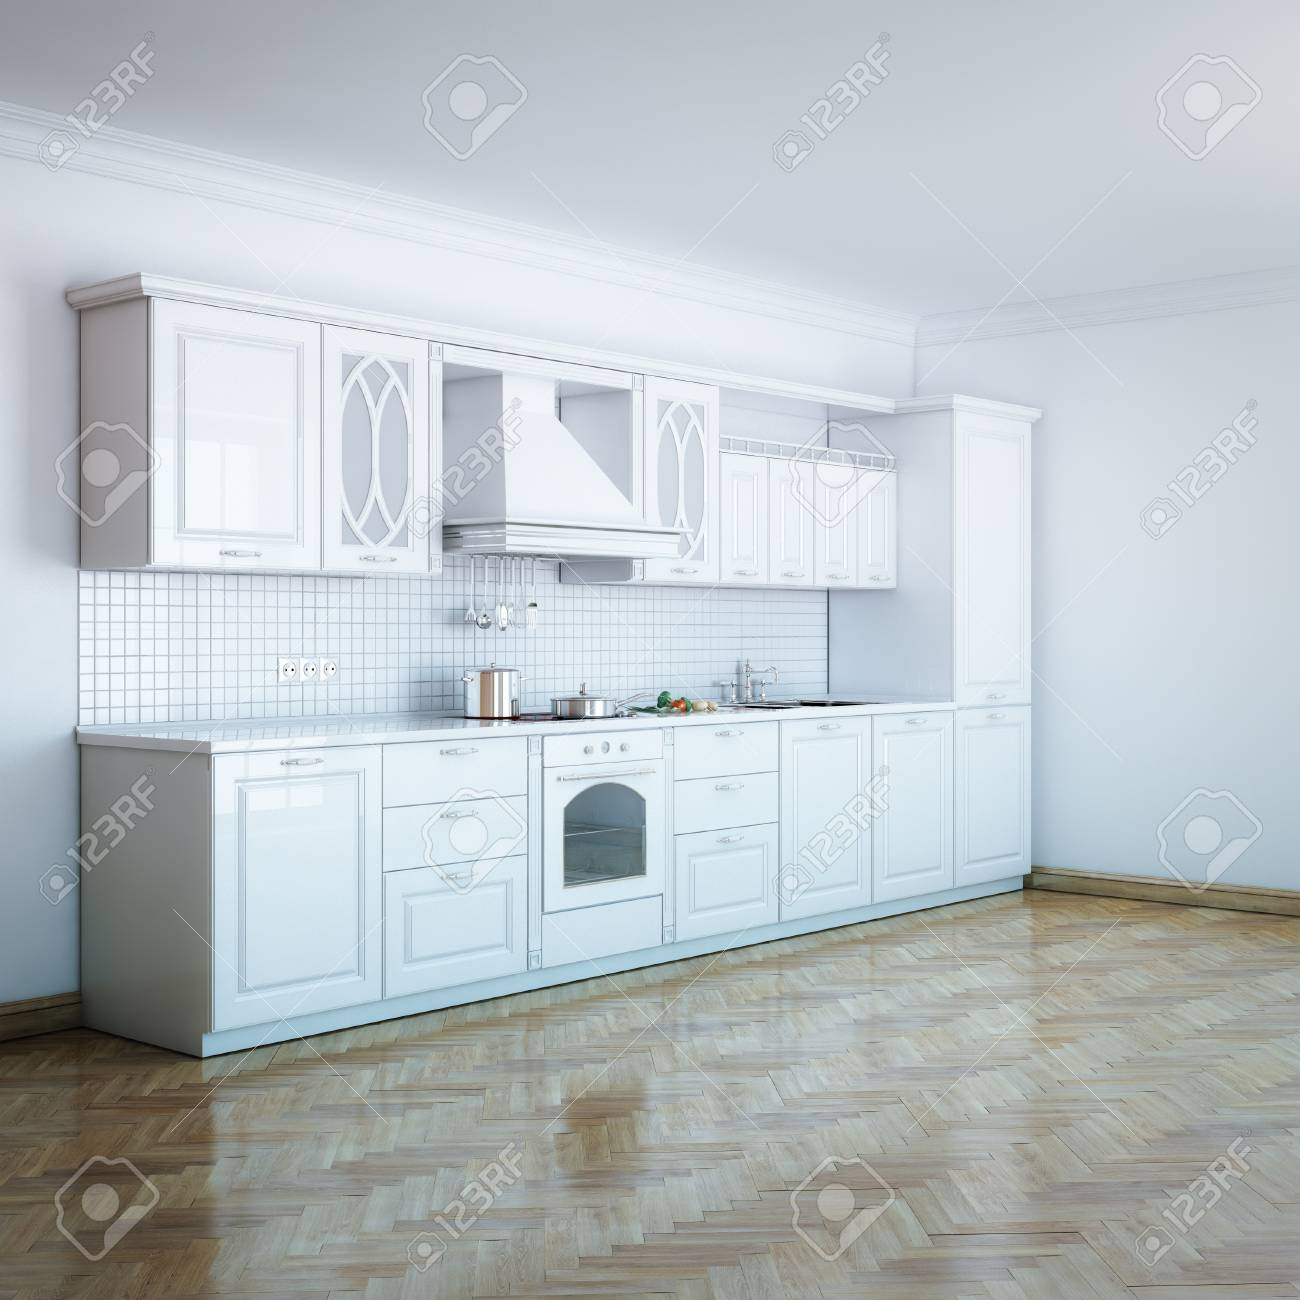 Classic Luxury White Kitchen With Hard Wood Stock Photo, Picture And ...